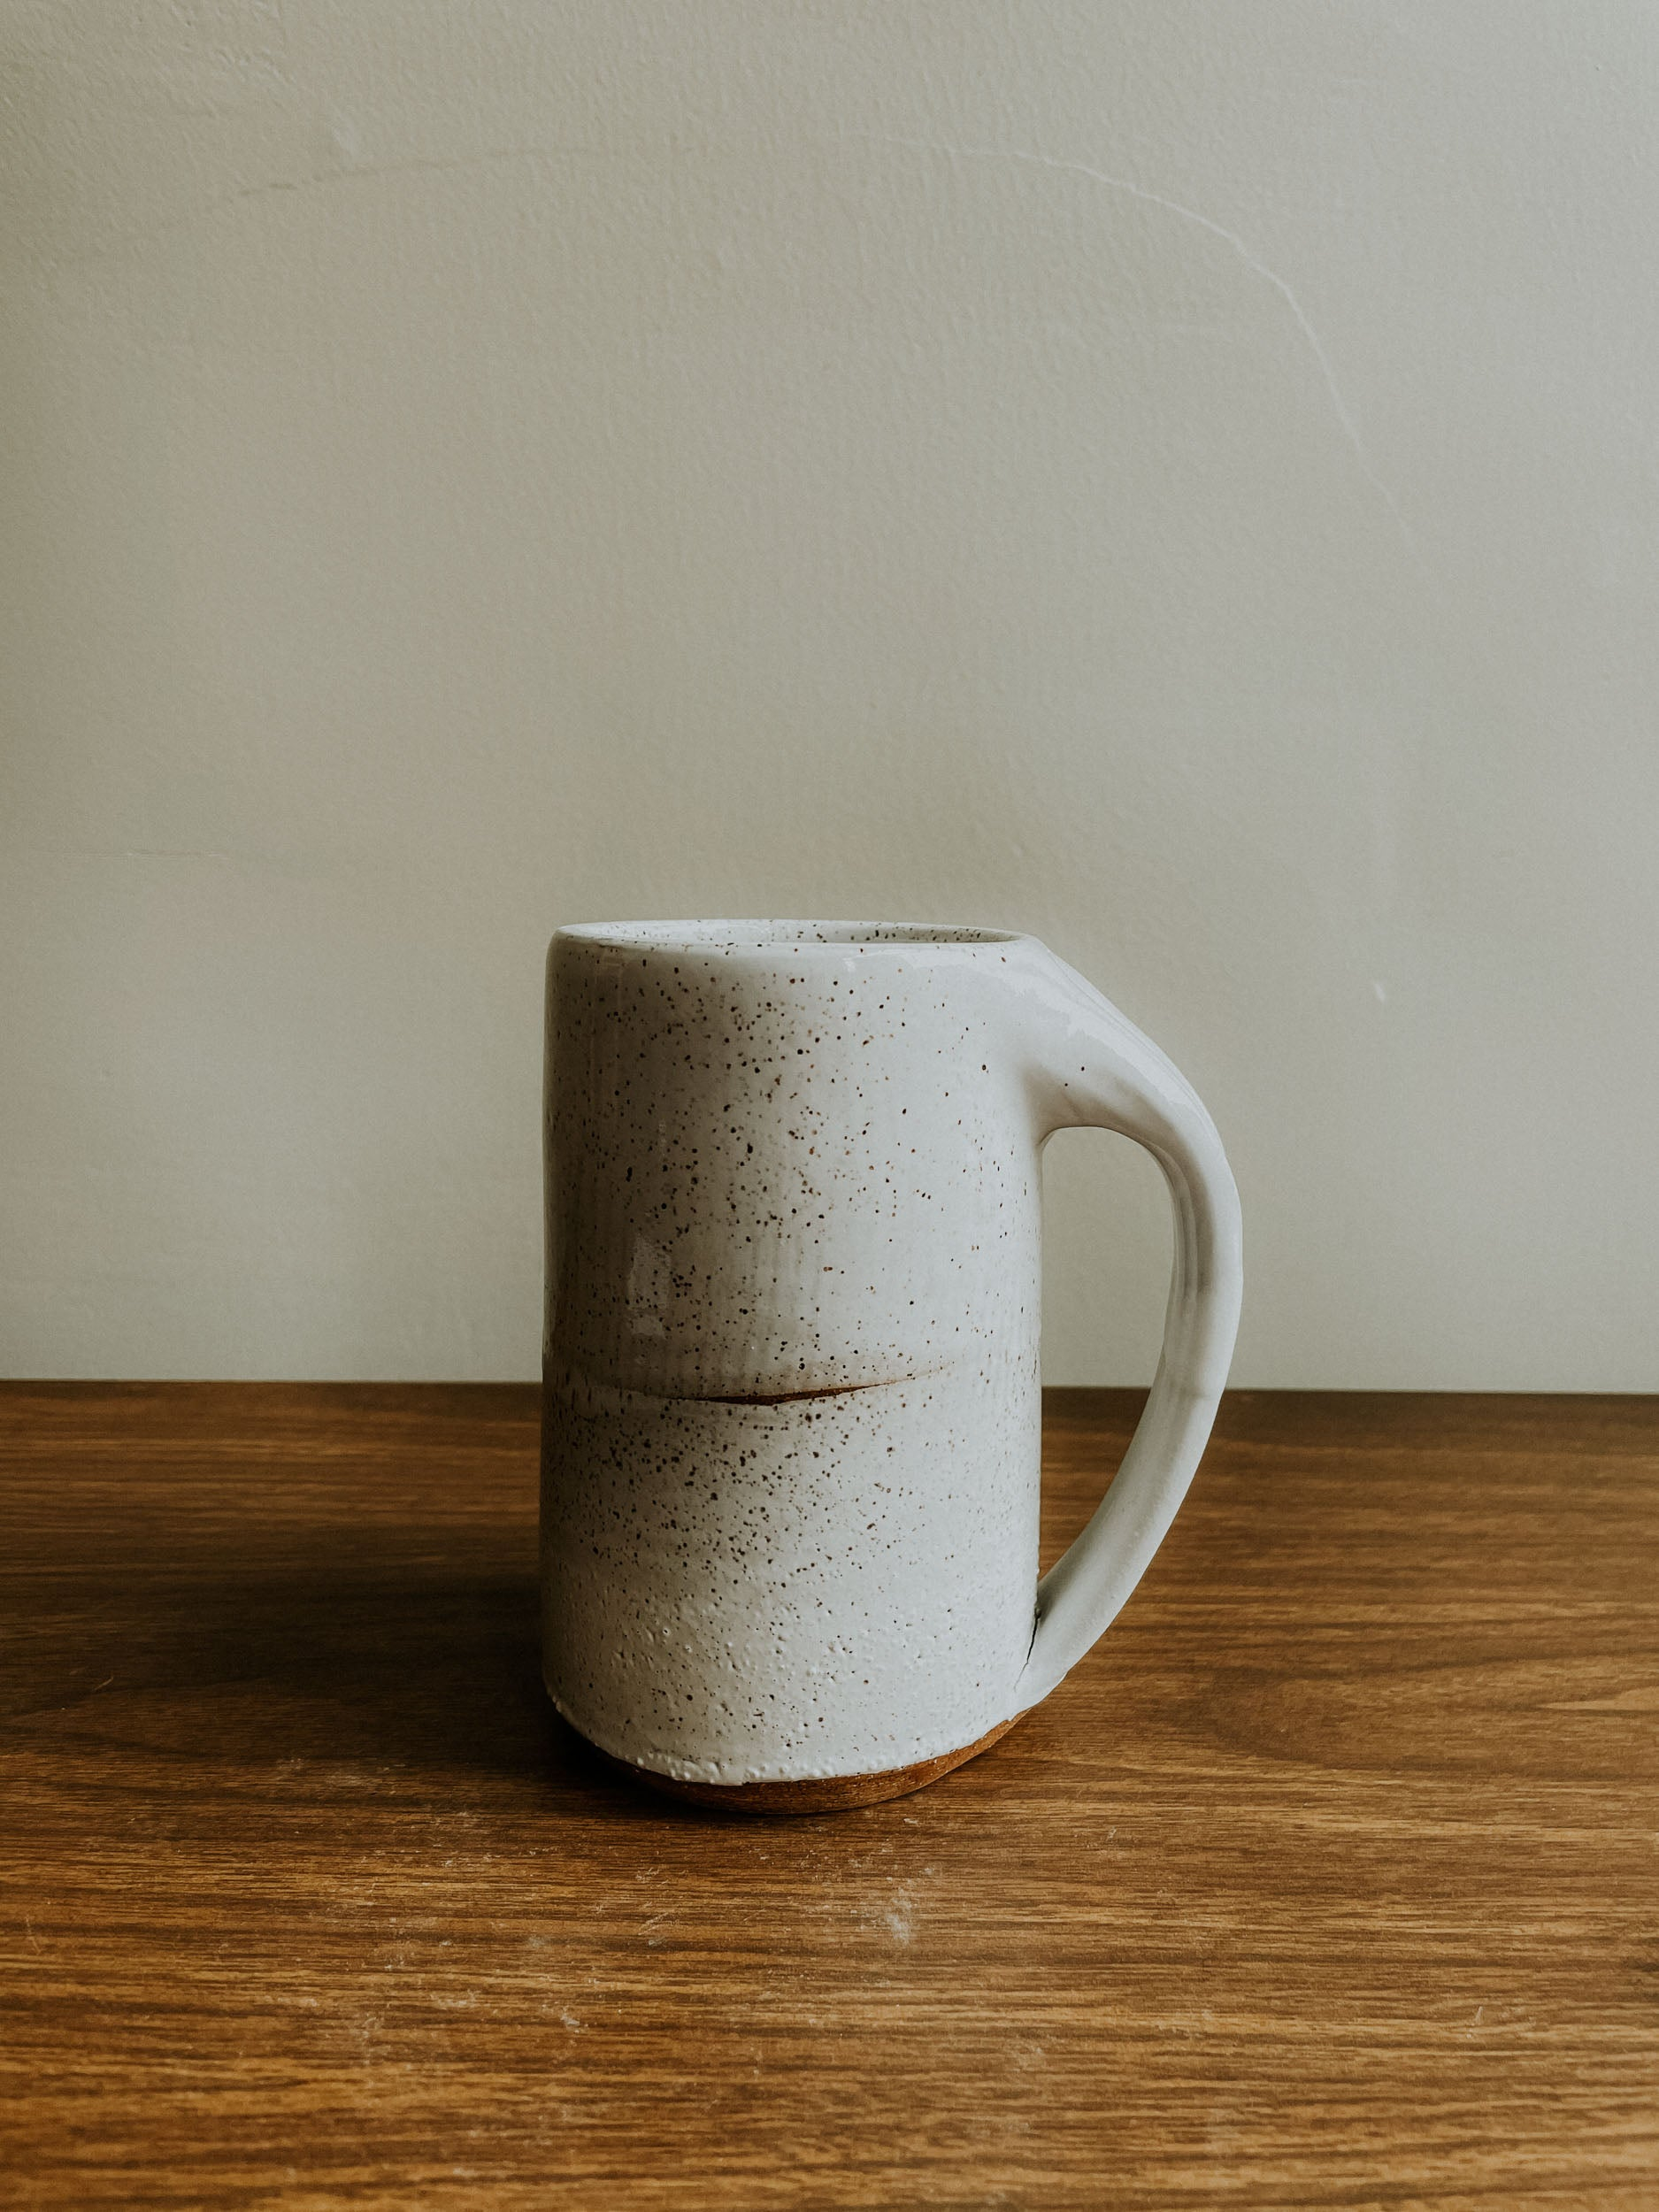 Tall Mug - Speckle Gloss White x Matte White